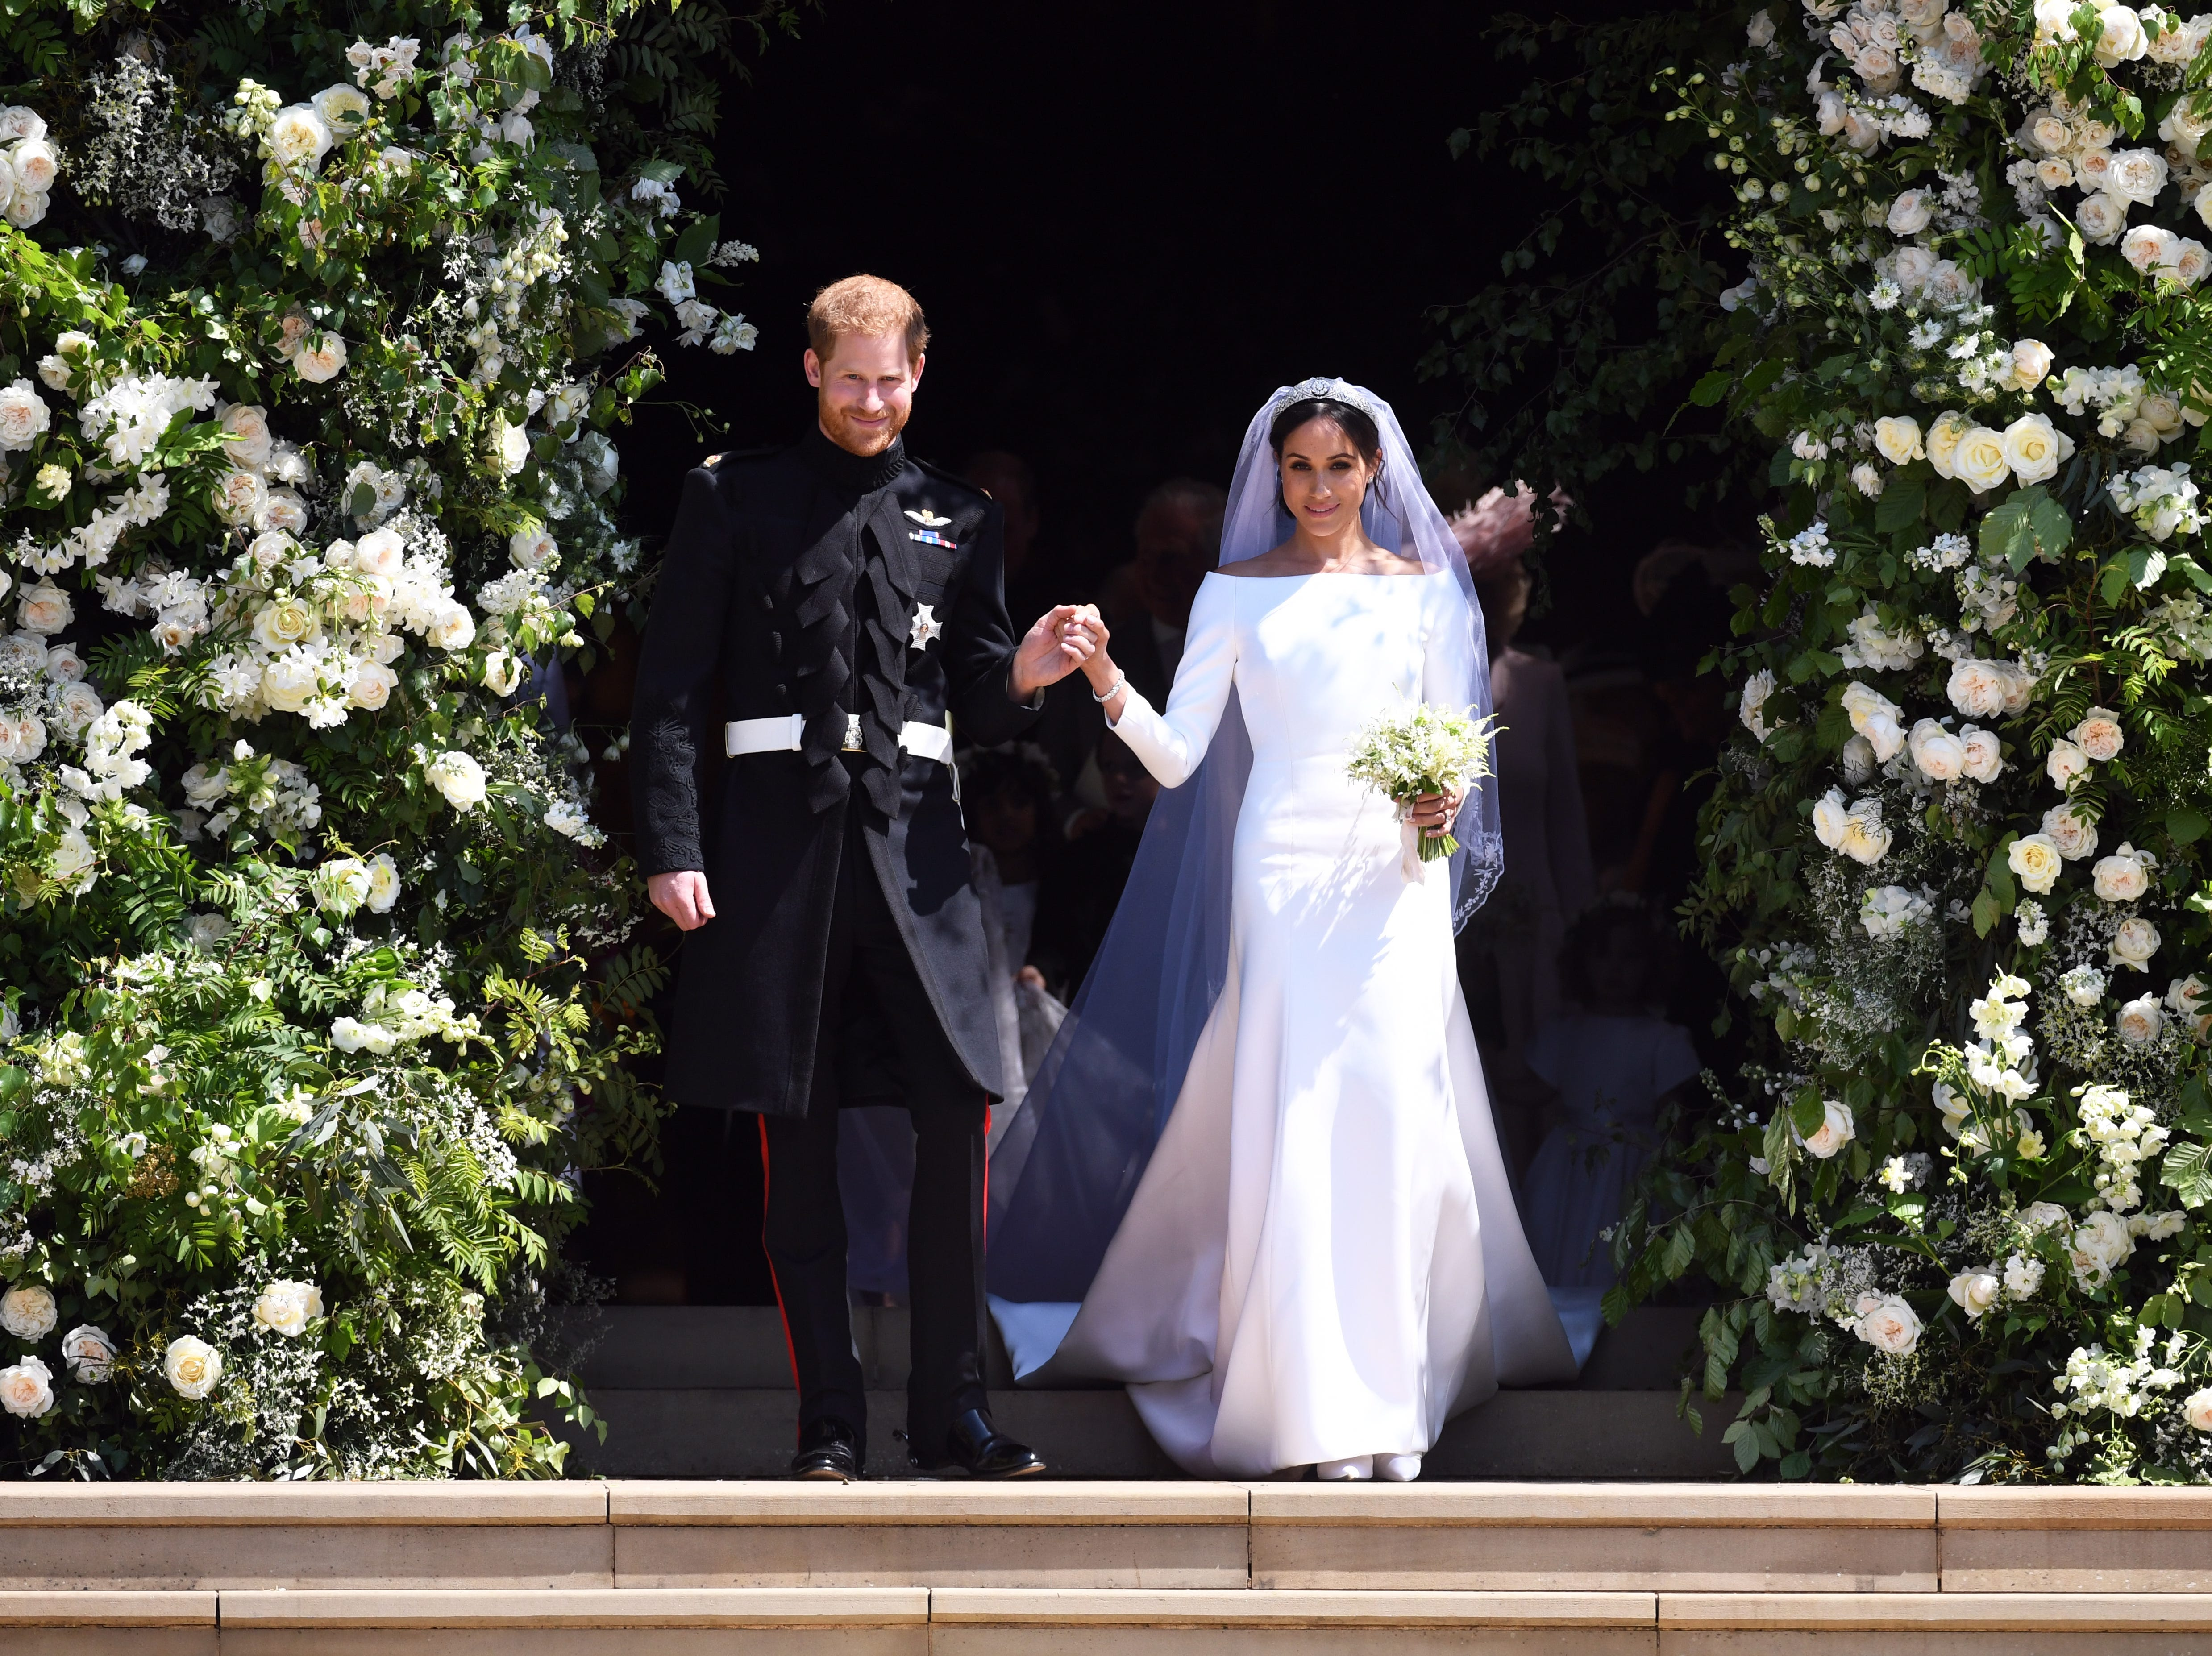 May 19, 2018: Britain's Prince Harry, Duke of Sussex and Meghan, Duchess of Sussex exit St George's Chapel in Windsor Castle after their royal wedding ceremony, in Windsor, Britain. The couple have been bestowed the royal titles of Duke and Duchess of Sussex on them by the British monarch.